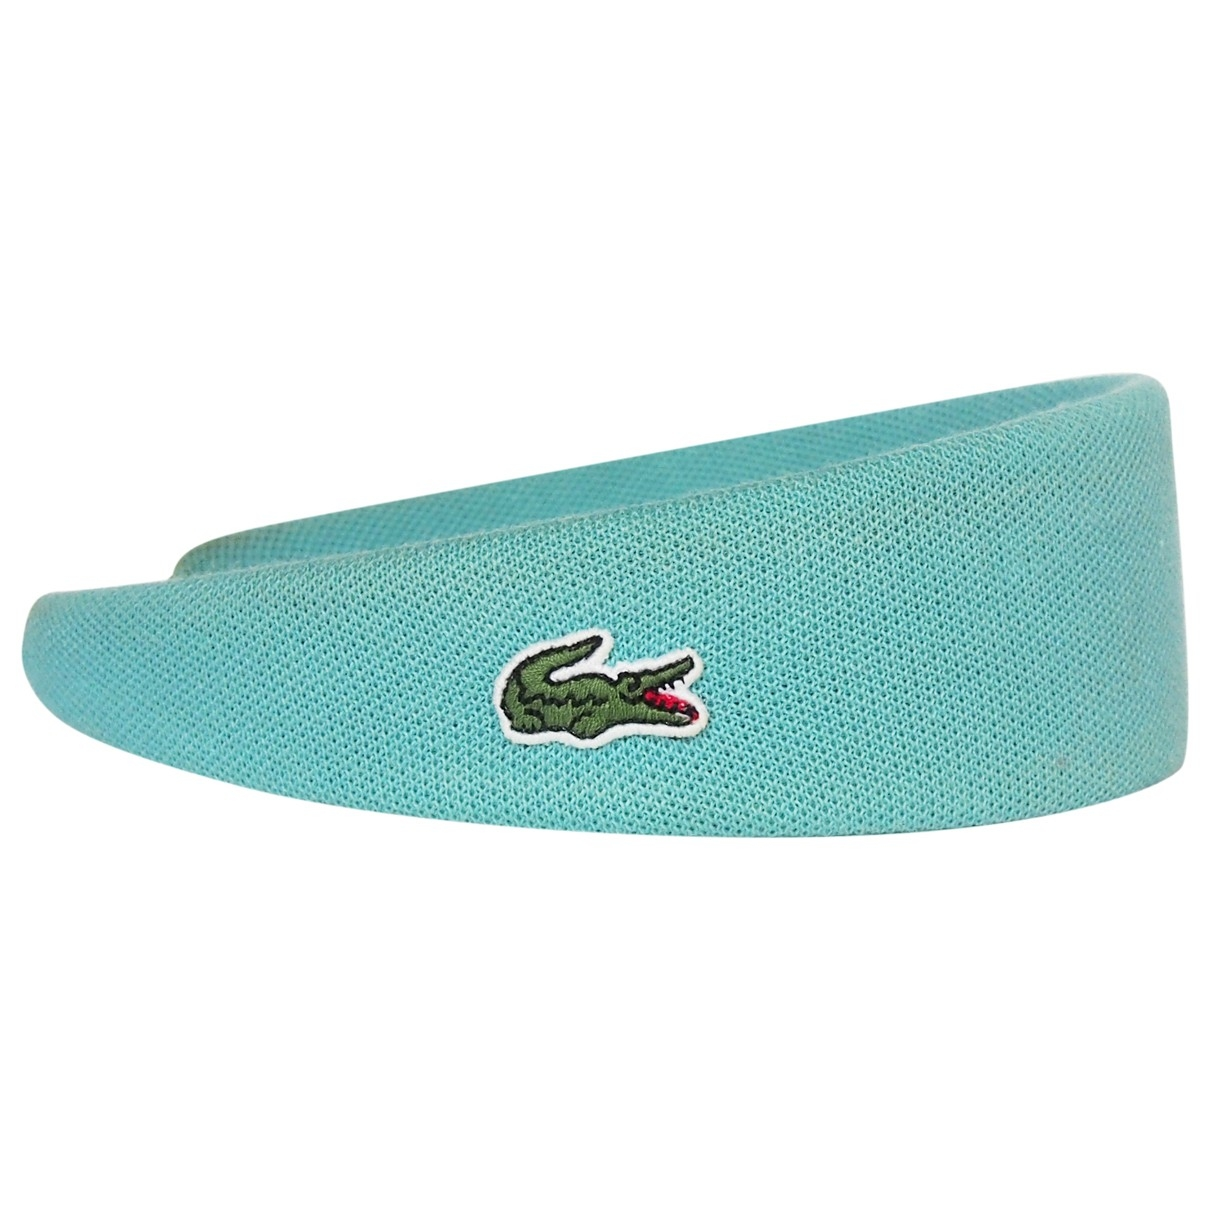 Lacoste \N Turquoise Cloth Hair accessories for Women \N